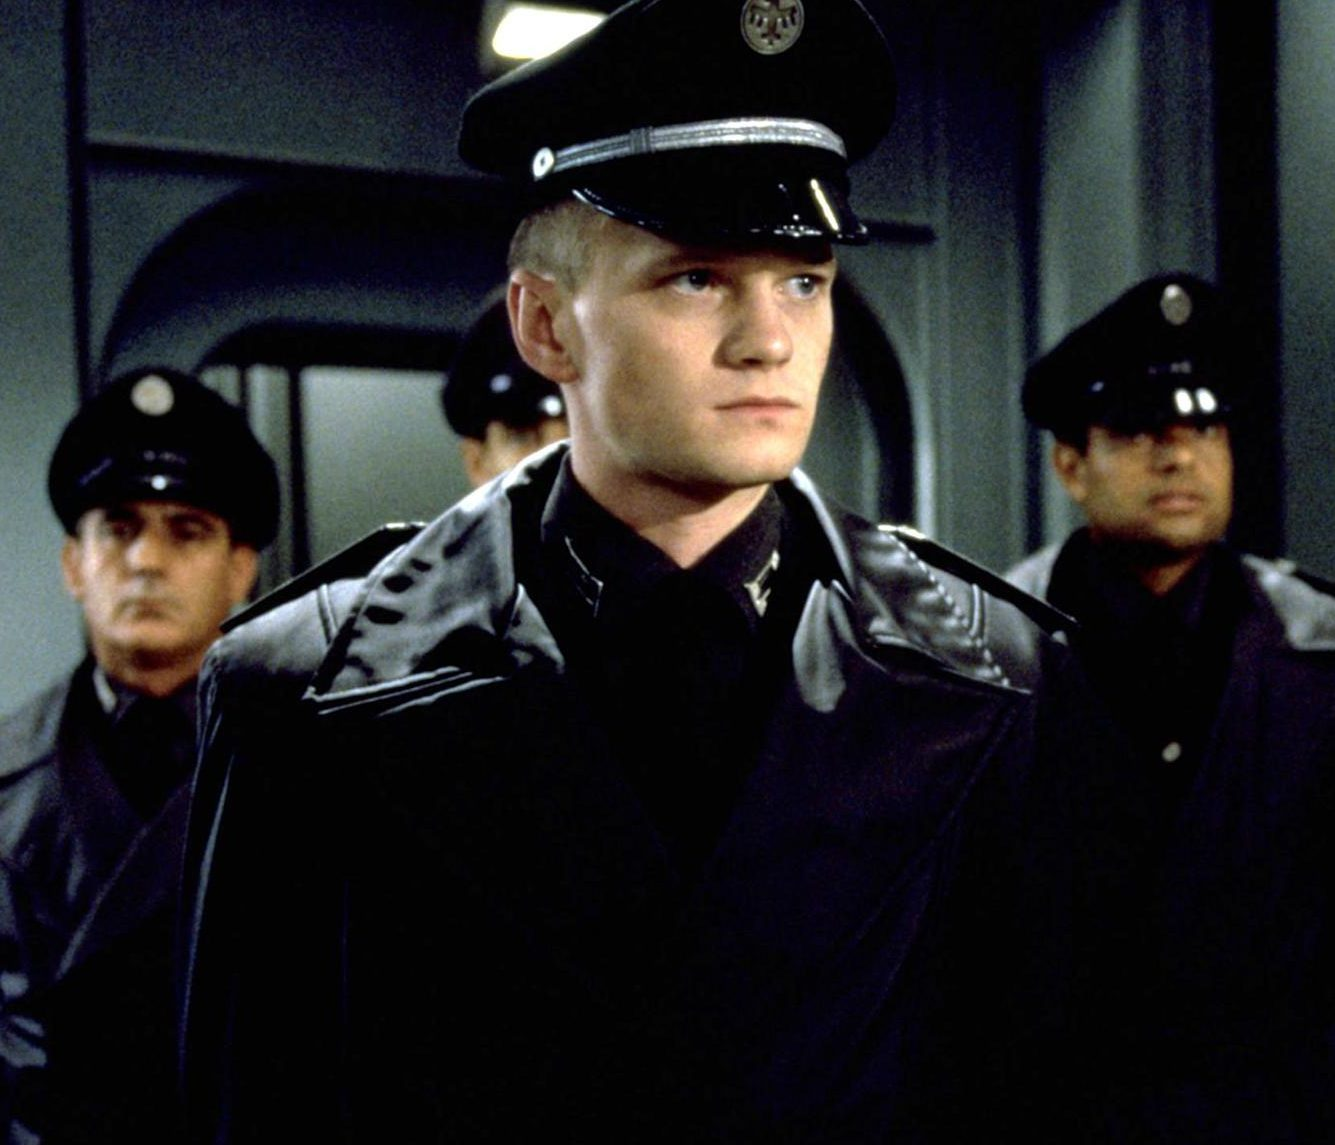 Starship Troopers Neil Patrick Harris e1623240427386 Mark Wahlberg Almost Starred, And More You Never Knew About Starship Troopers